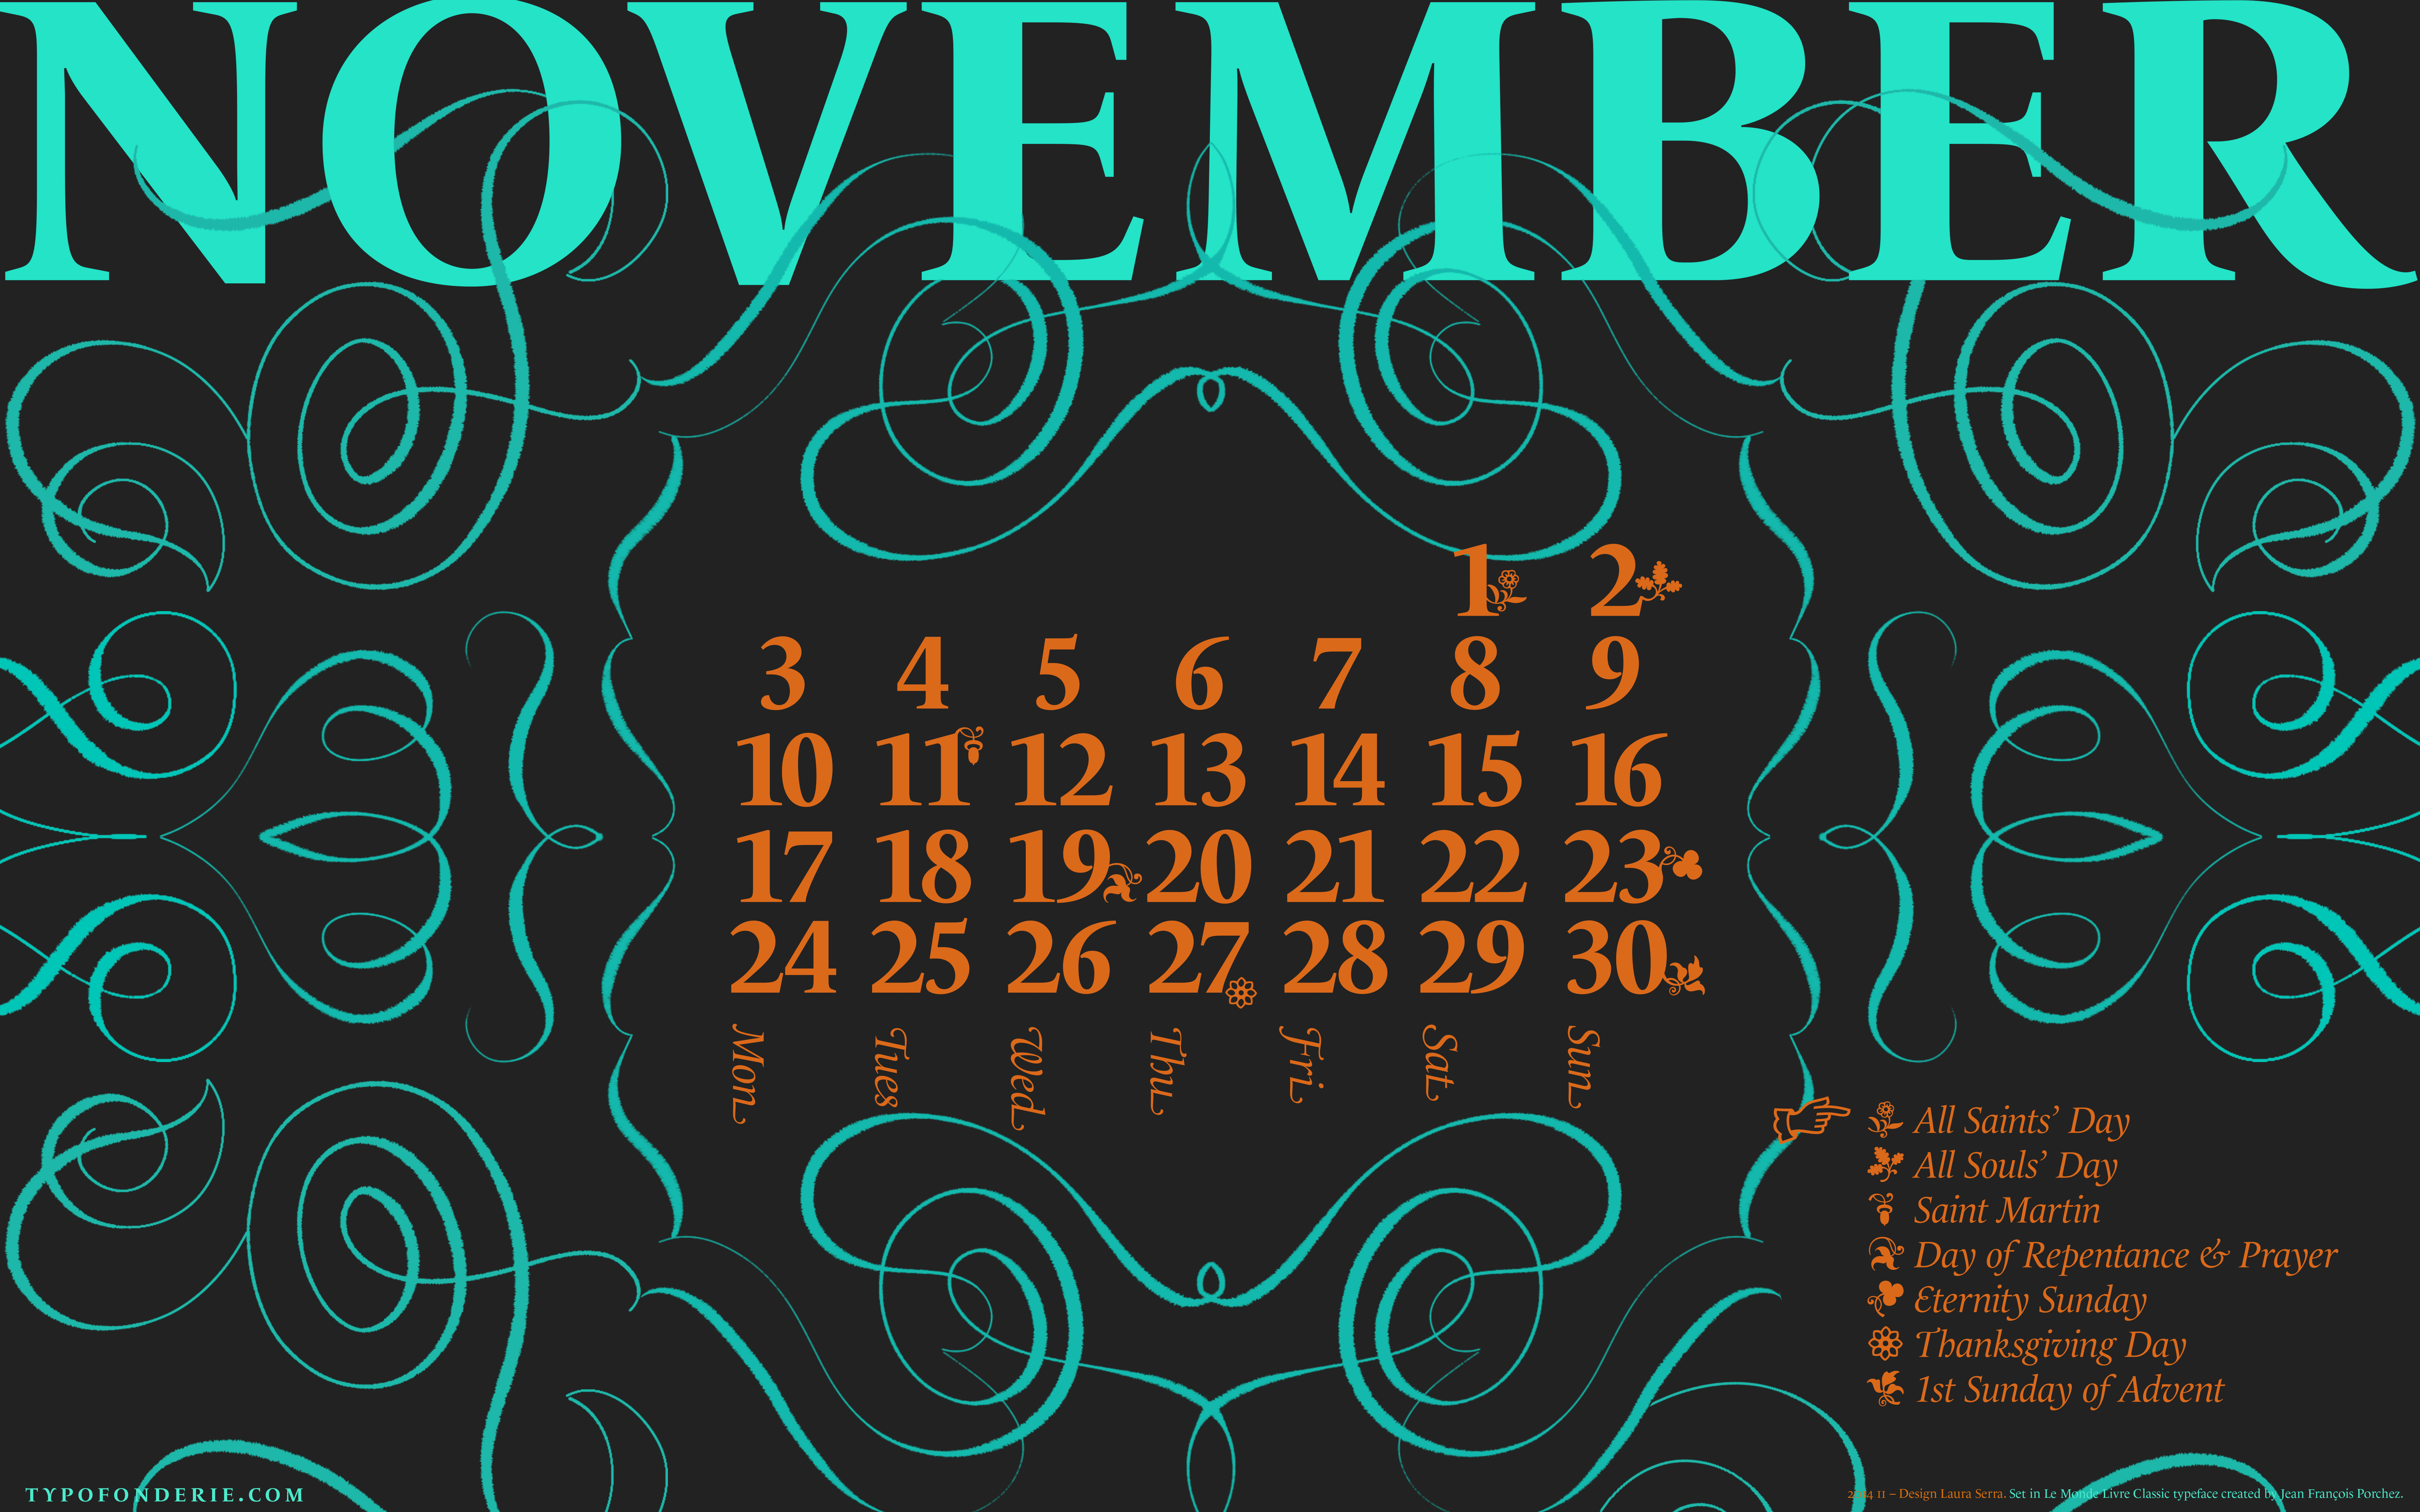 A Wallpaper Calendar November 2014 Featuring Le Monde Livre